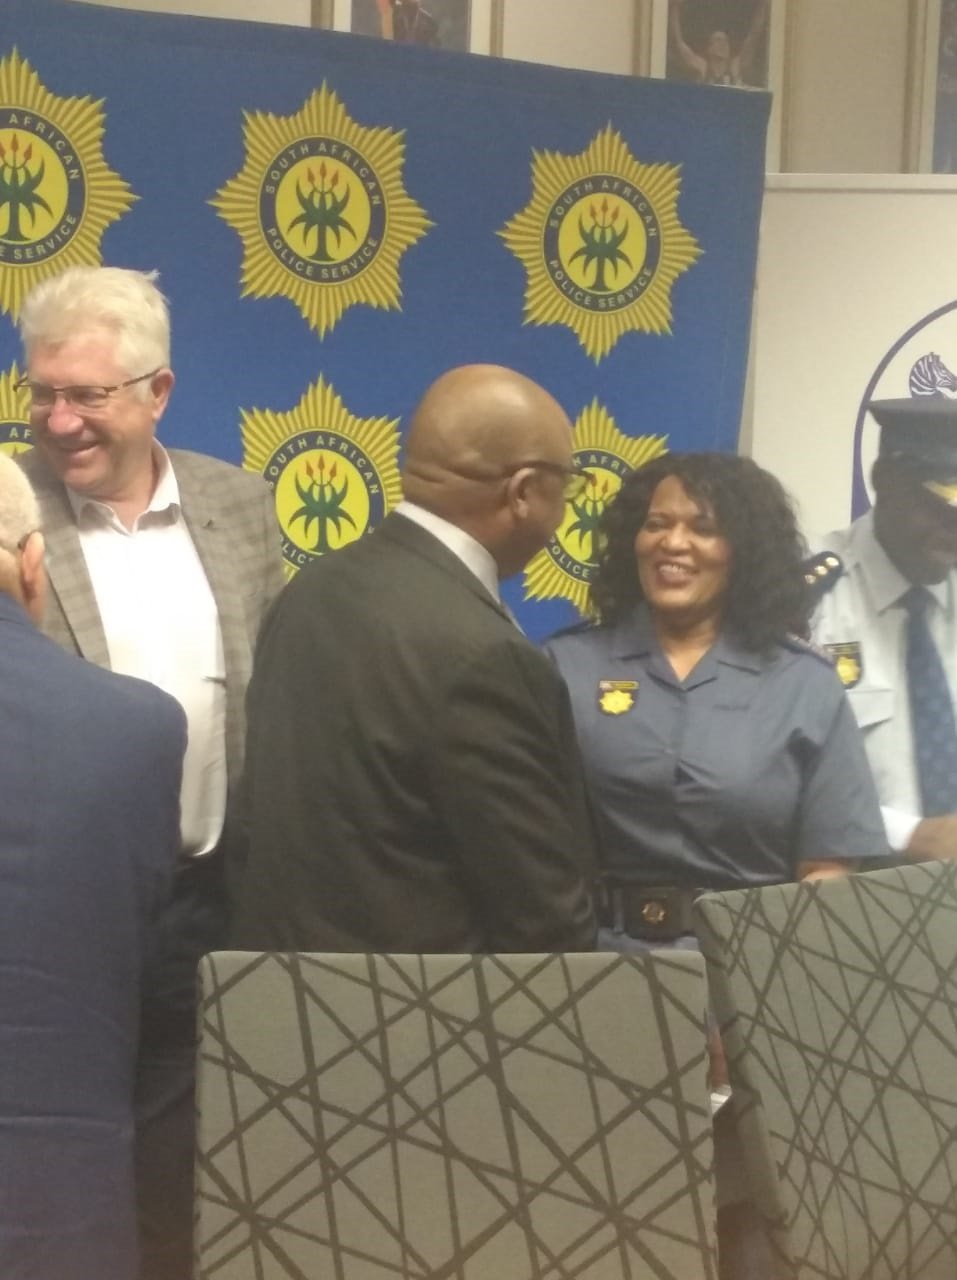 Western Cape police commissioner, Lt General Yolisa Matakata (right) with Premier Alan Winde and Deputy Police Minister Cassel Mathale. (Jenna Etheridge, News24)